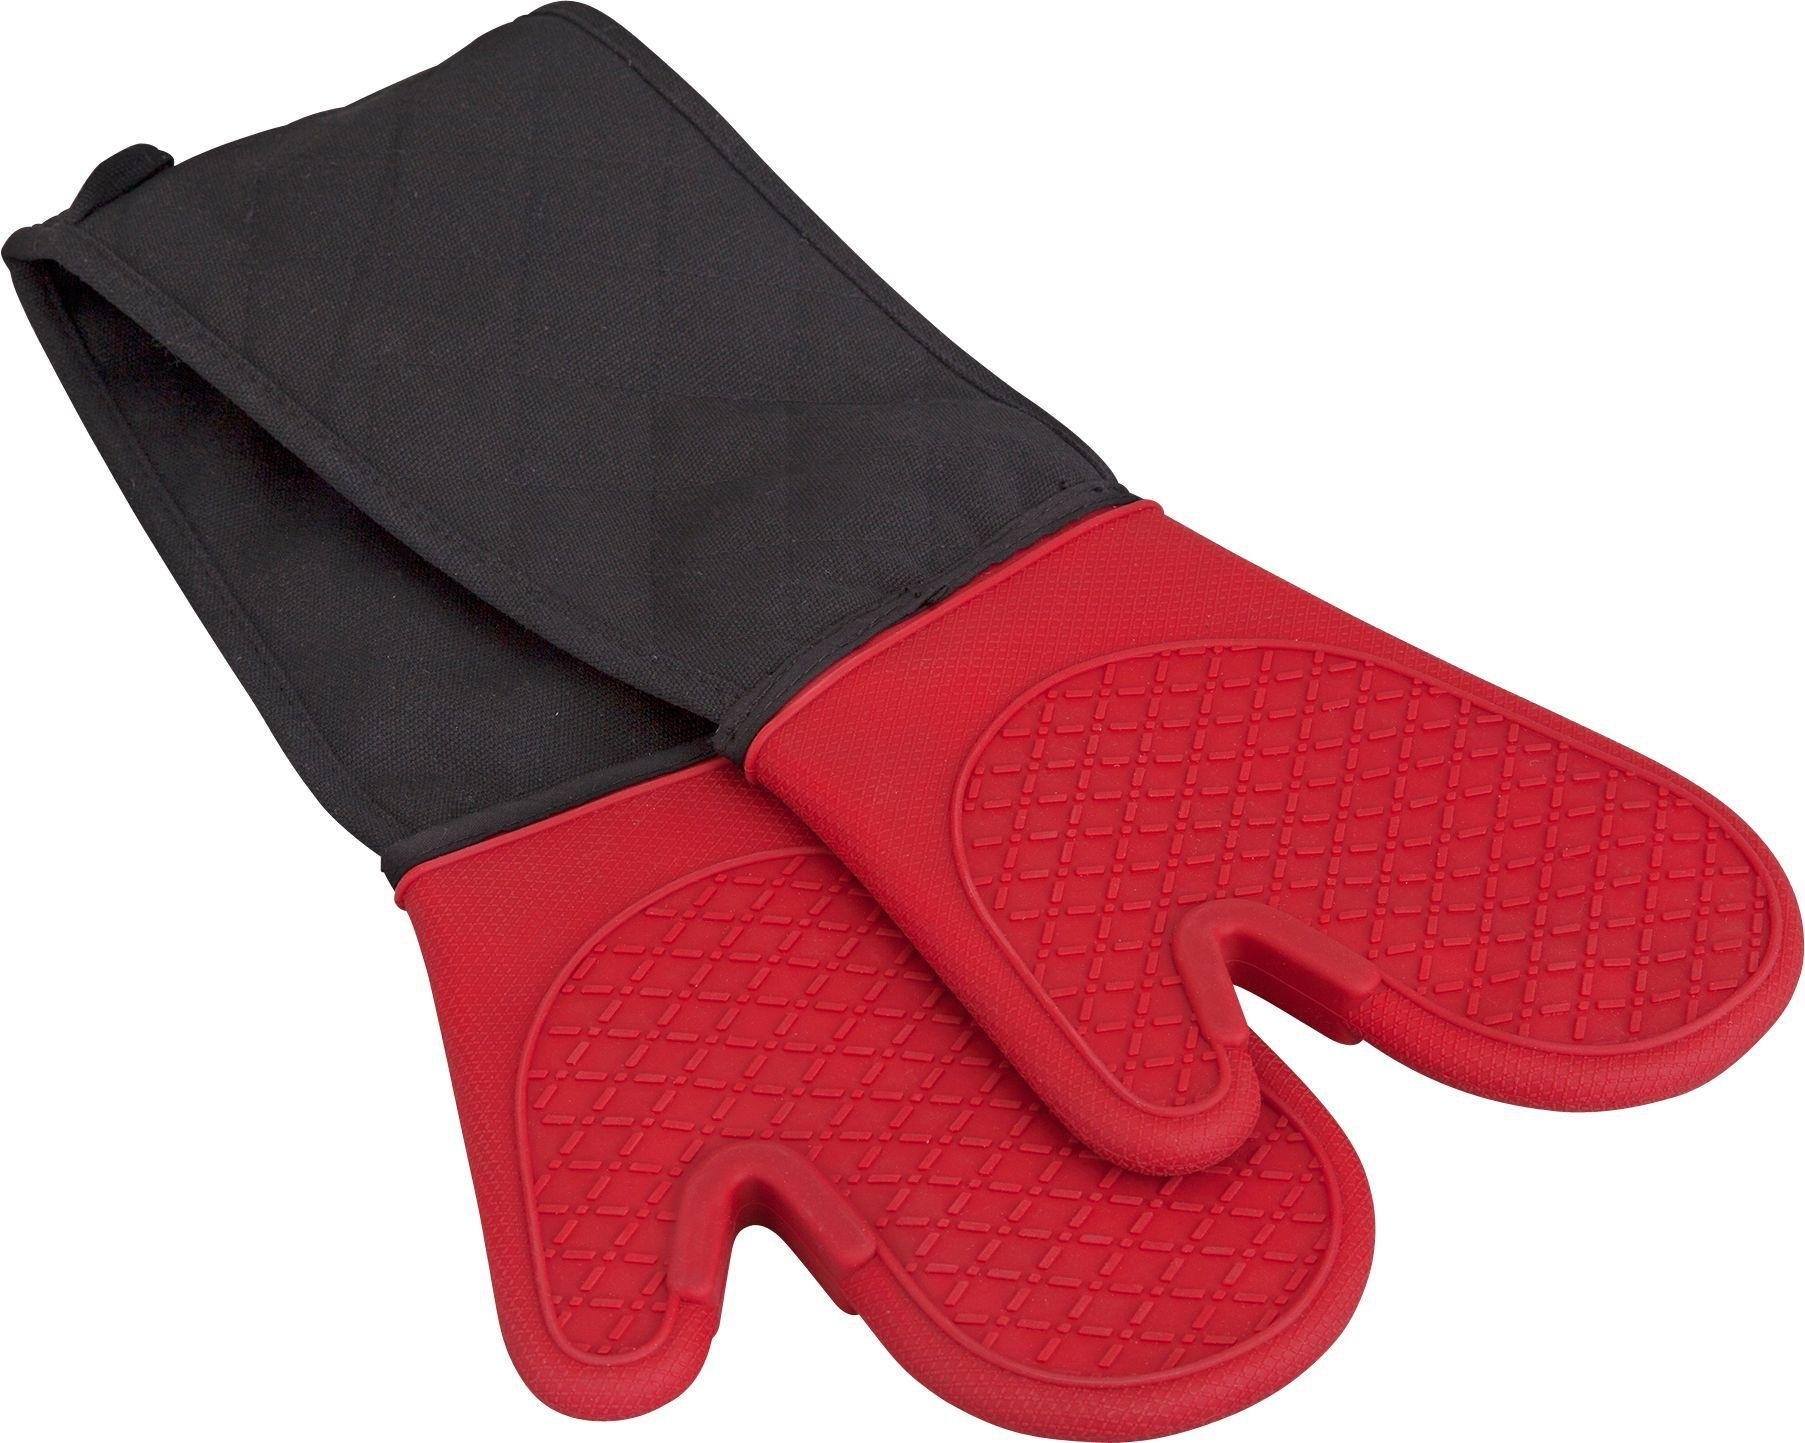 Driving gloves argos - Home Silicone Double Oven Glove